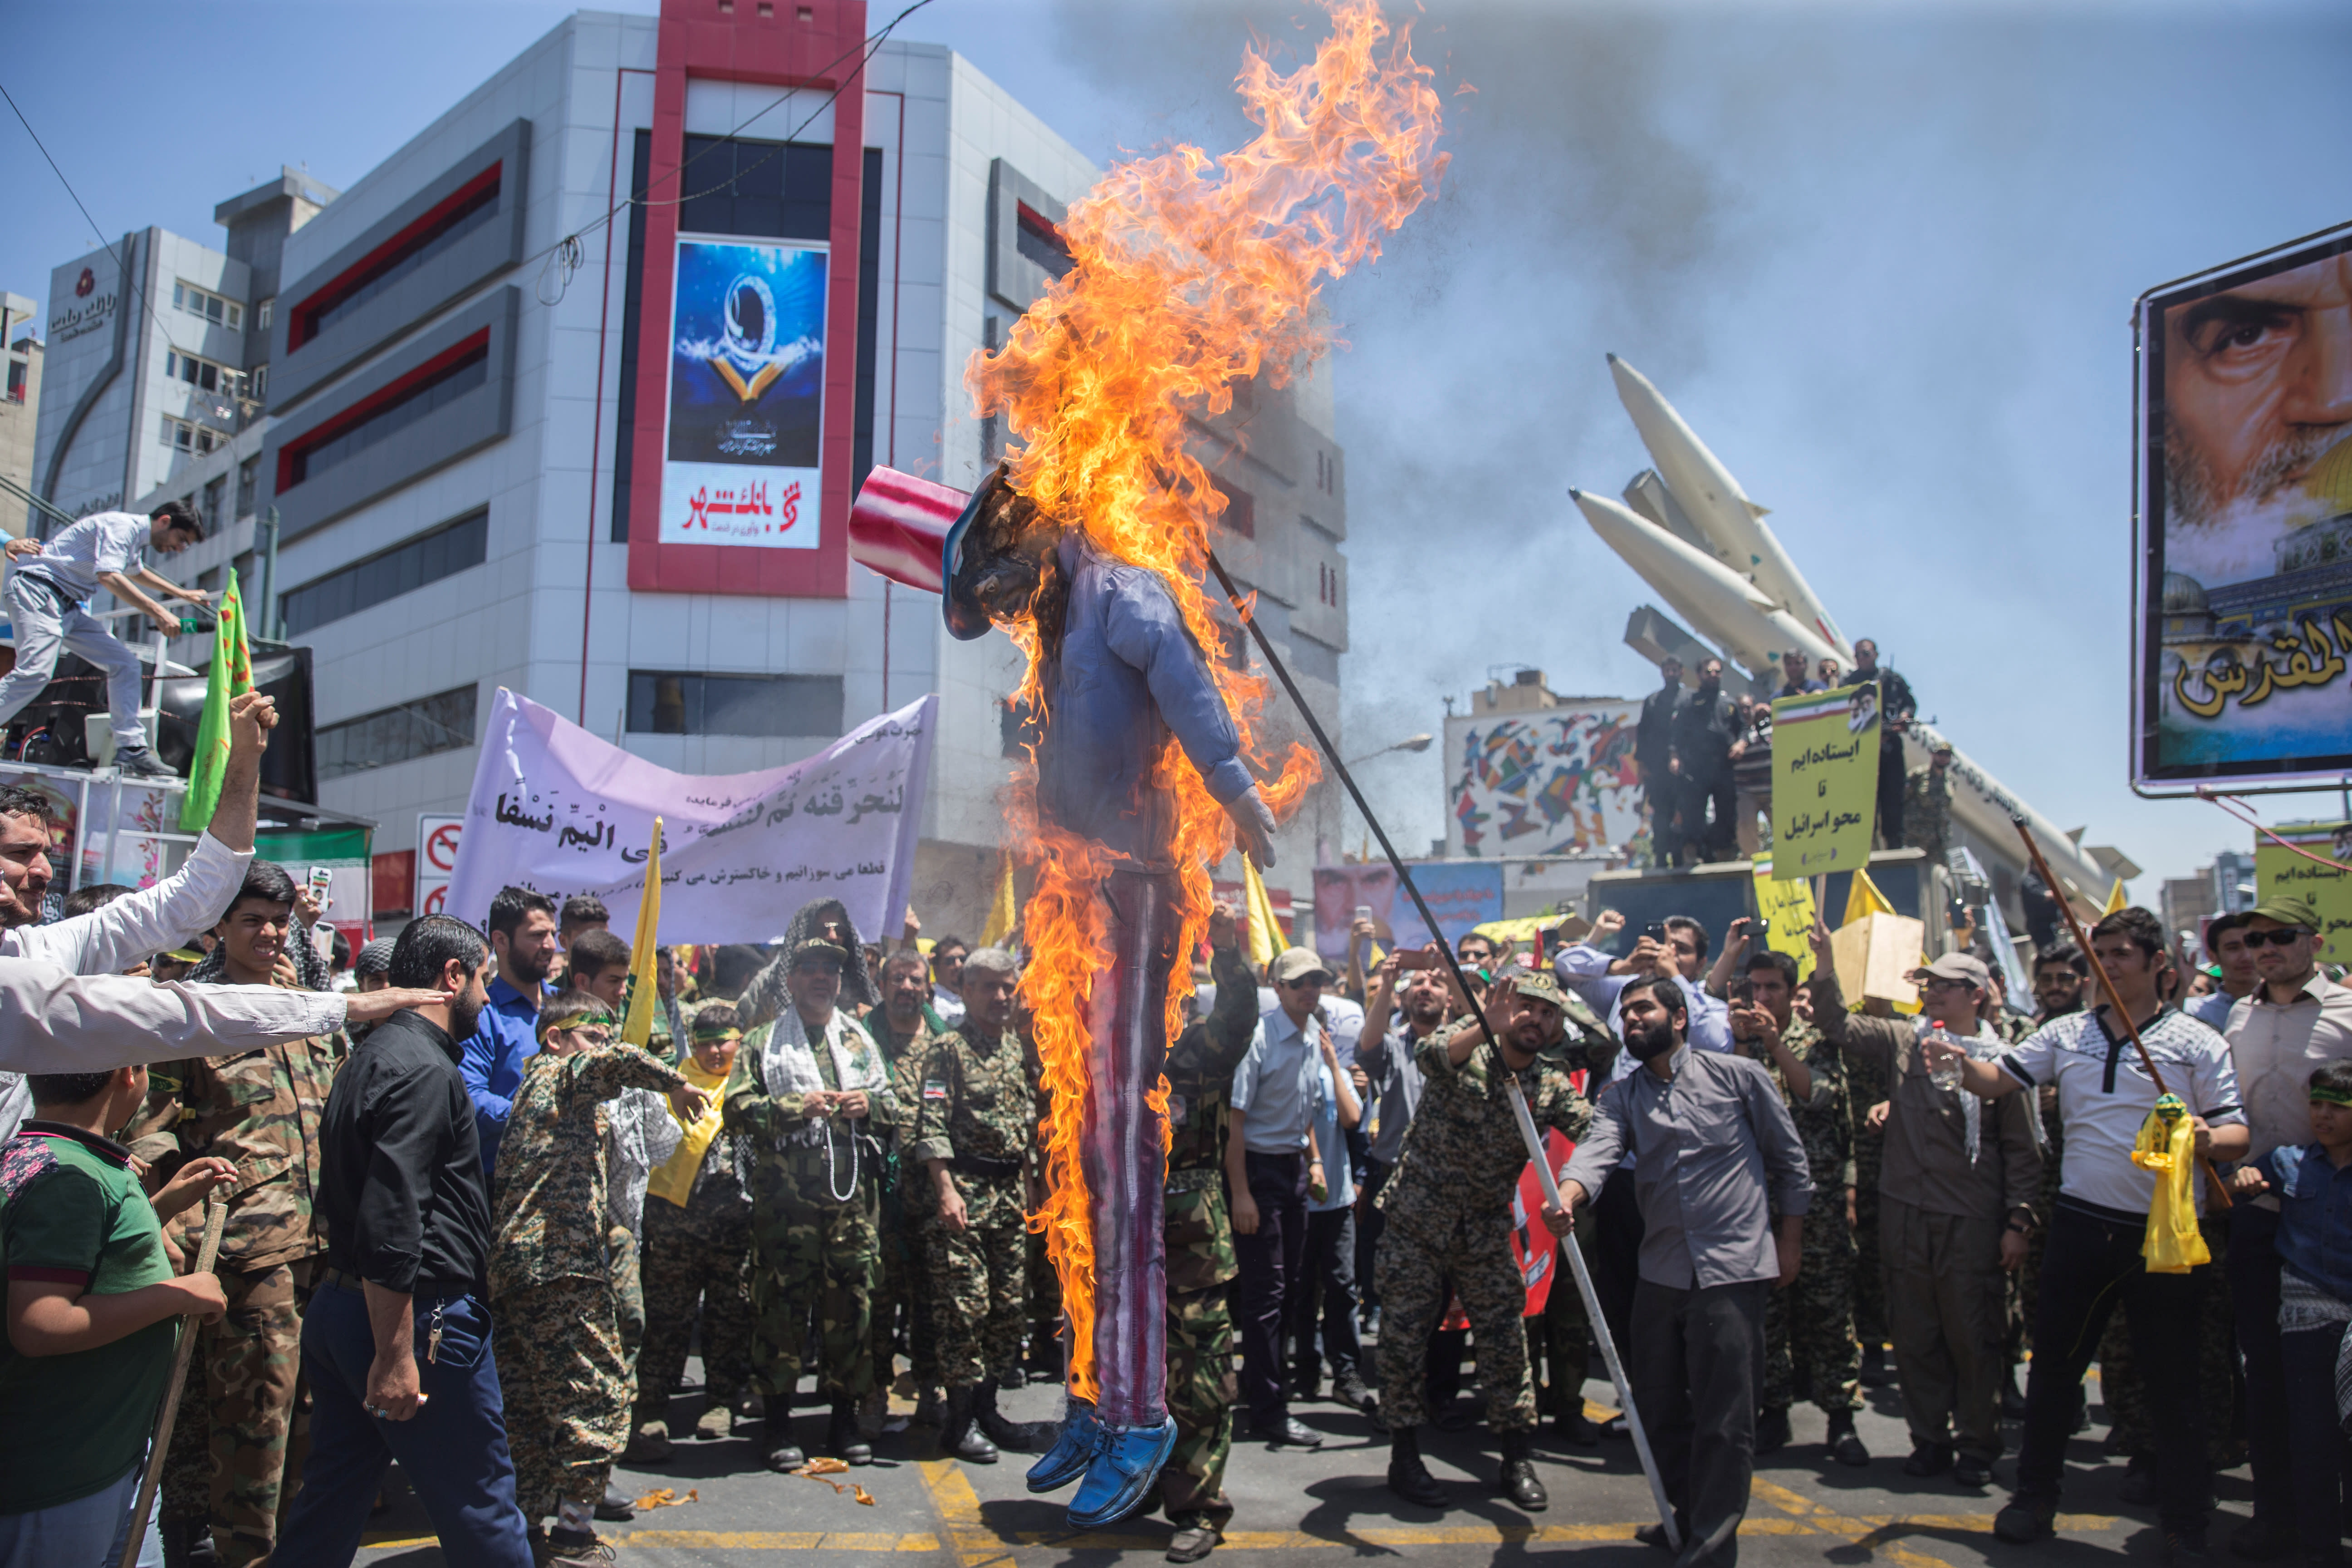 A scarecrow model is set on fire by Iranian demonstratorson during the annual pro-Palestinian rally marking Al-Quds Day in Tehran, Iran, June 23, 2017. NAZANIN TABATABAEE YAZDI/ TIMA VIA REUTERS